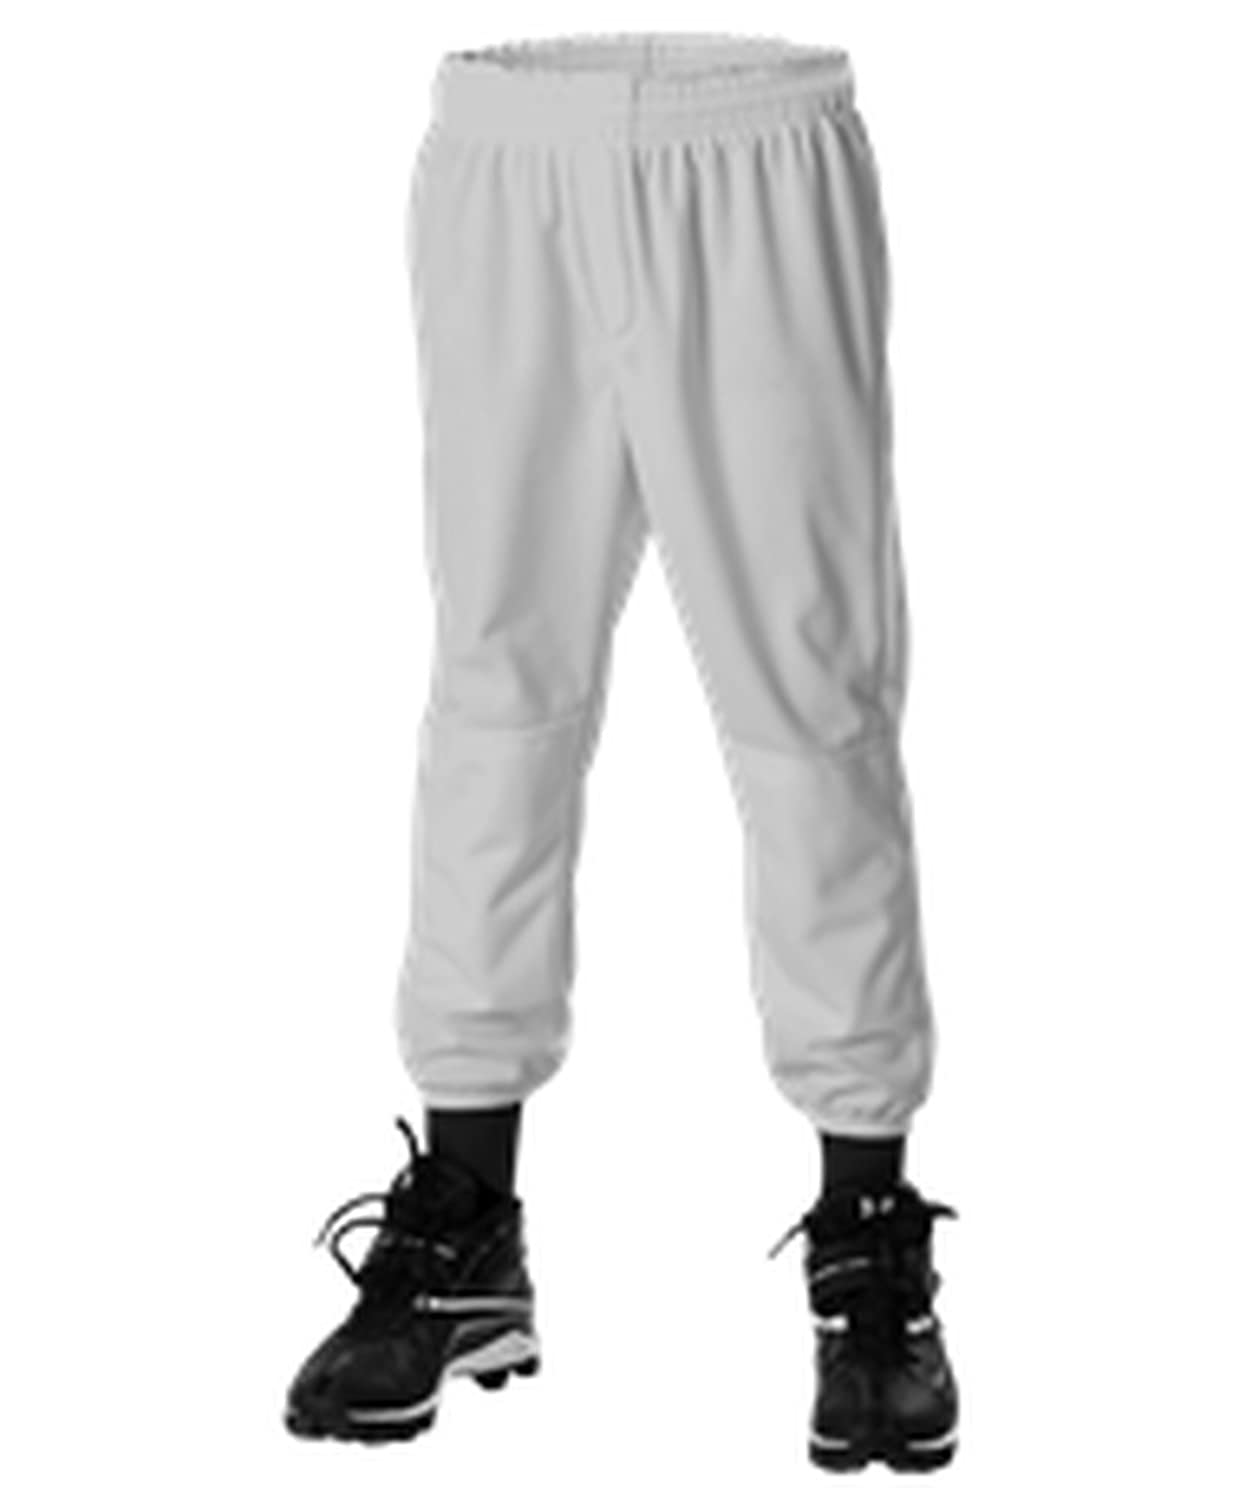 Alleson Athletic PANTS ボーイズ カラー: グレー B072KMTPSS